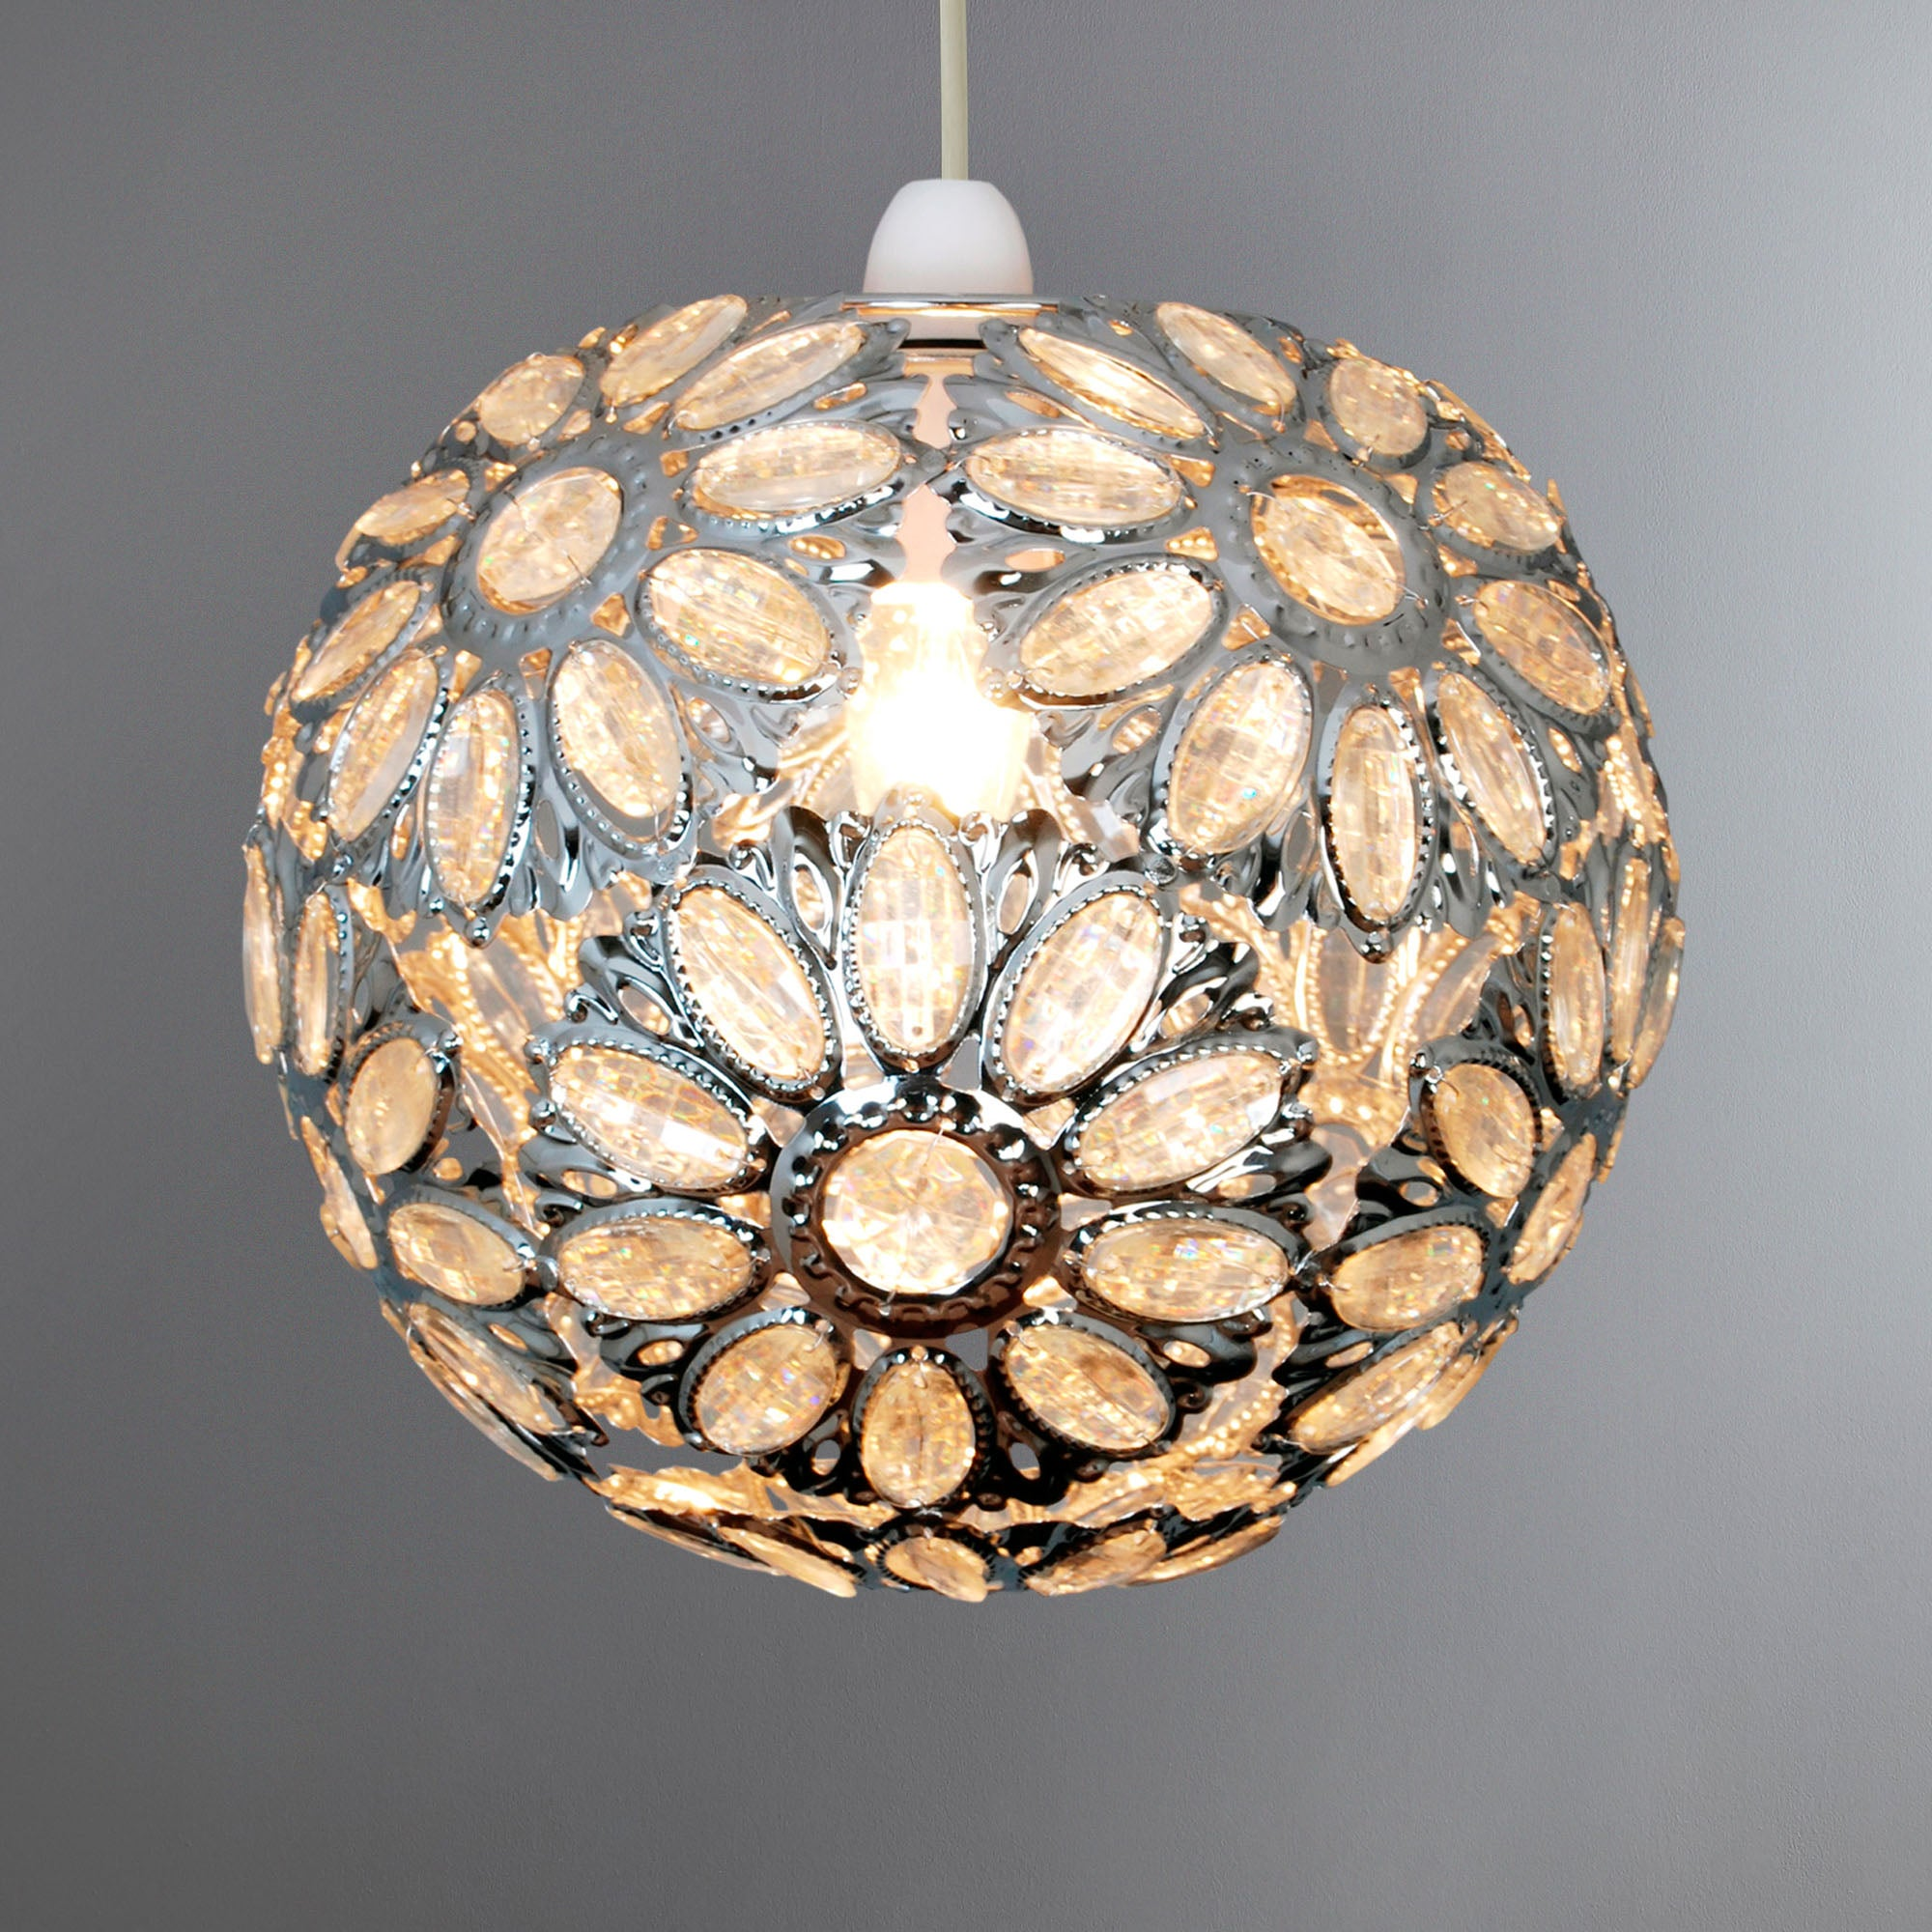 Compare prices daisy products dunelm on costcrawler image for clear daisy pendant clear at dunelm in lighting mozeypictures Gallery